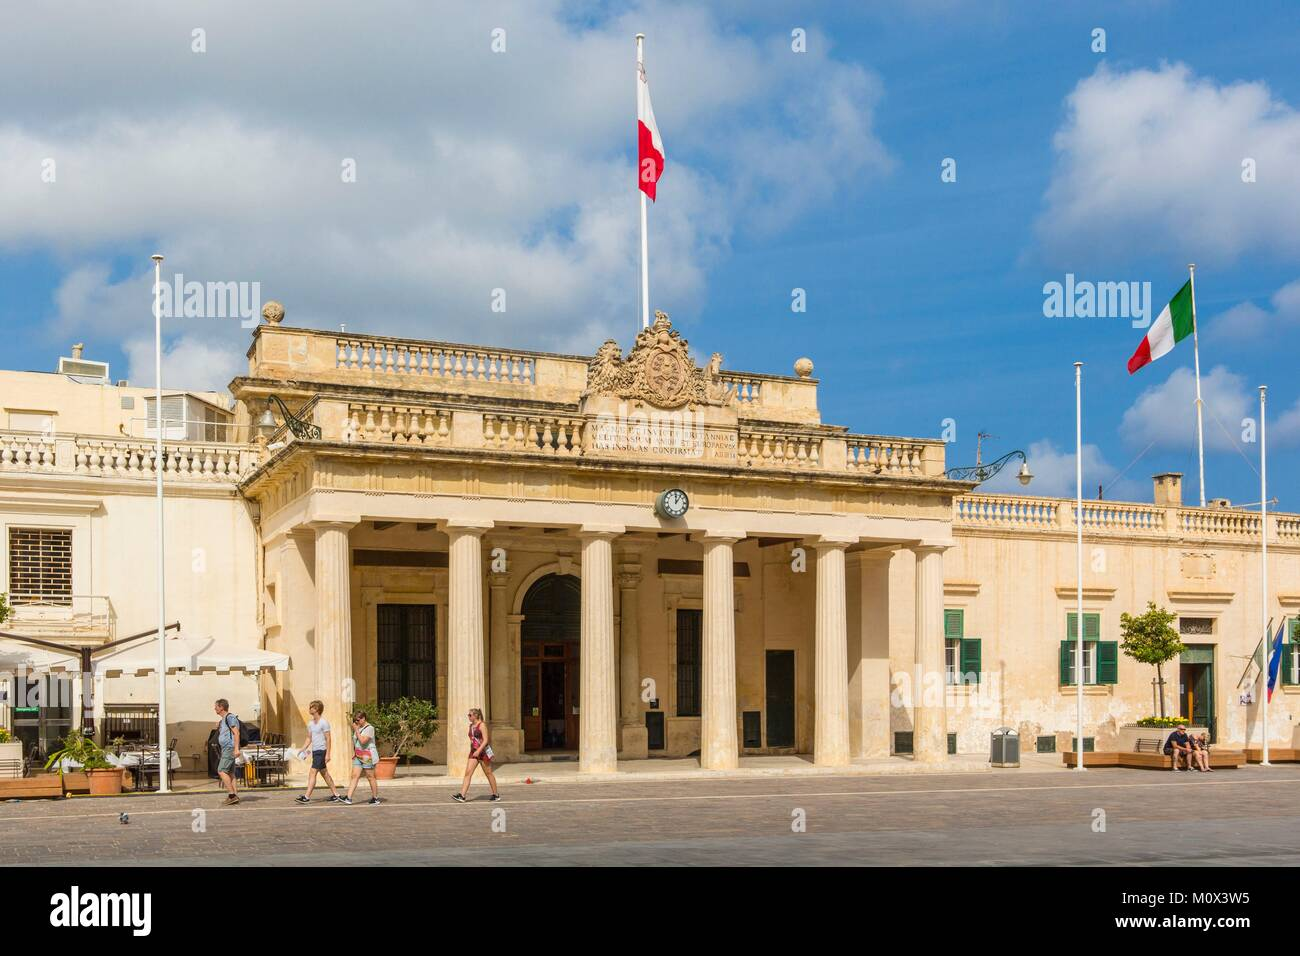 Malta,Valletta,listed as World Heritage by UNESCO,Presidential palace square - Stock Image